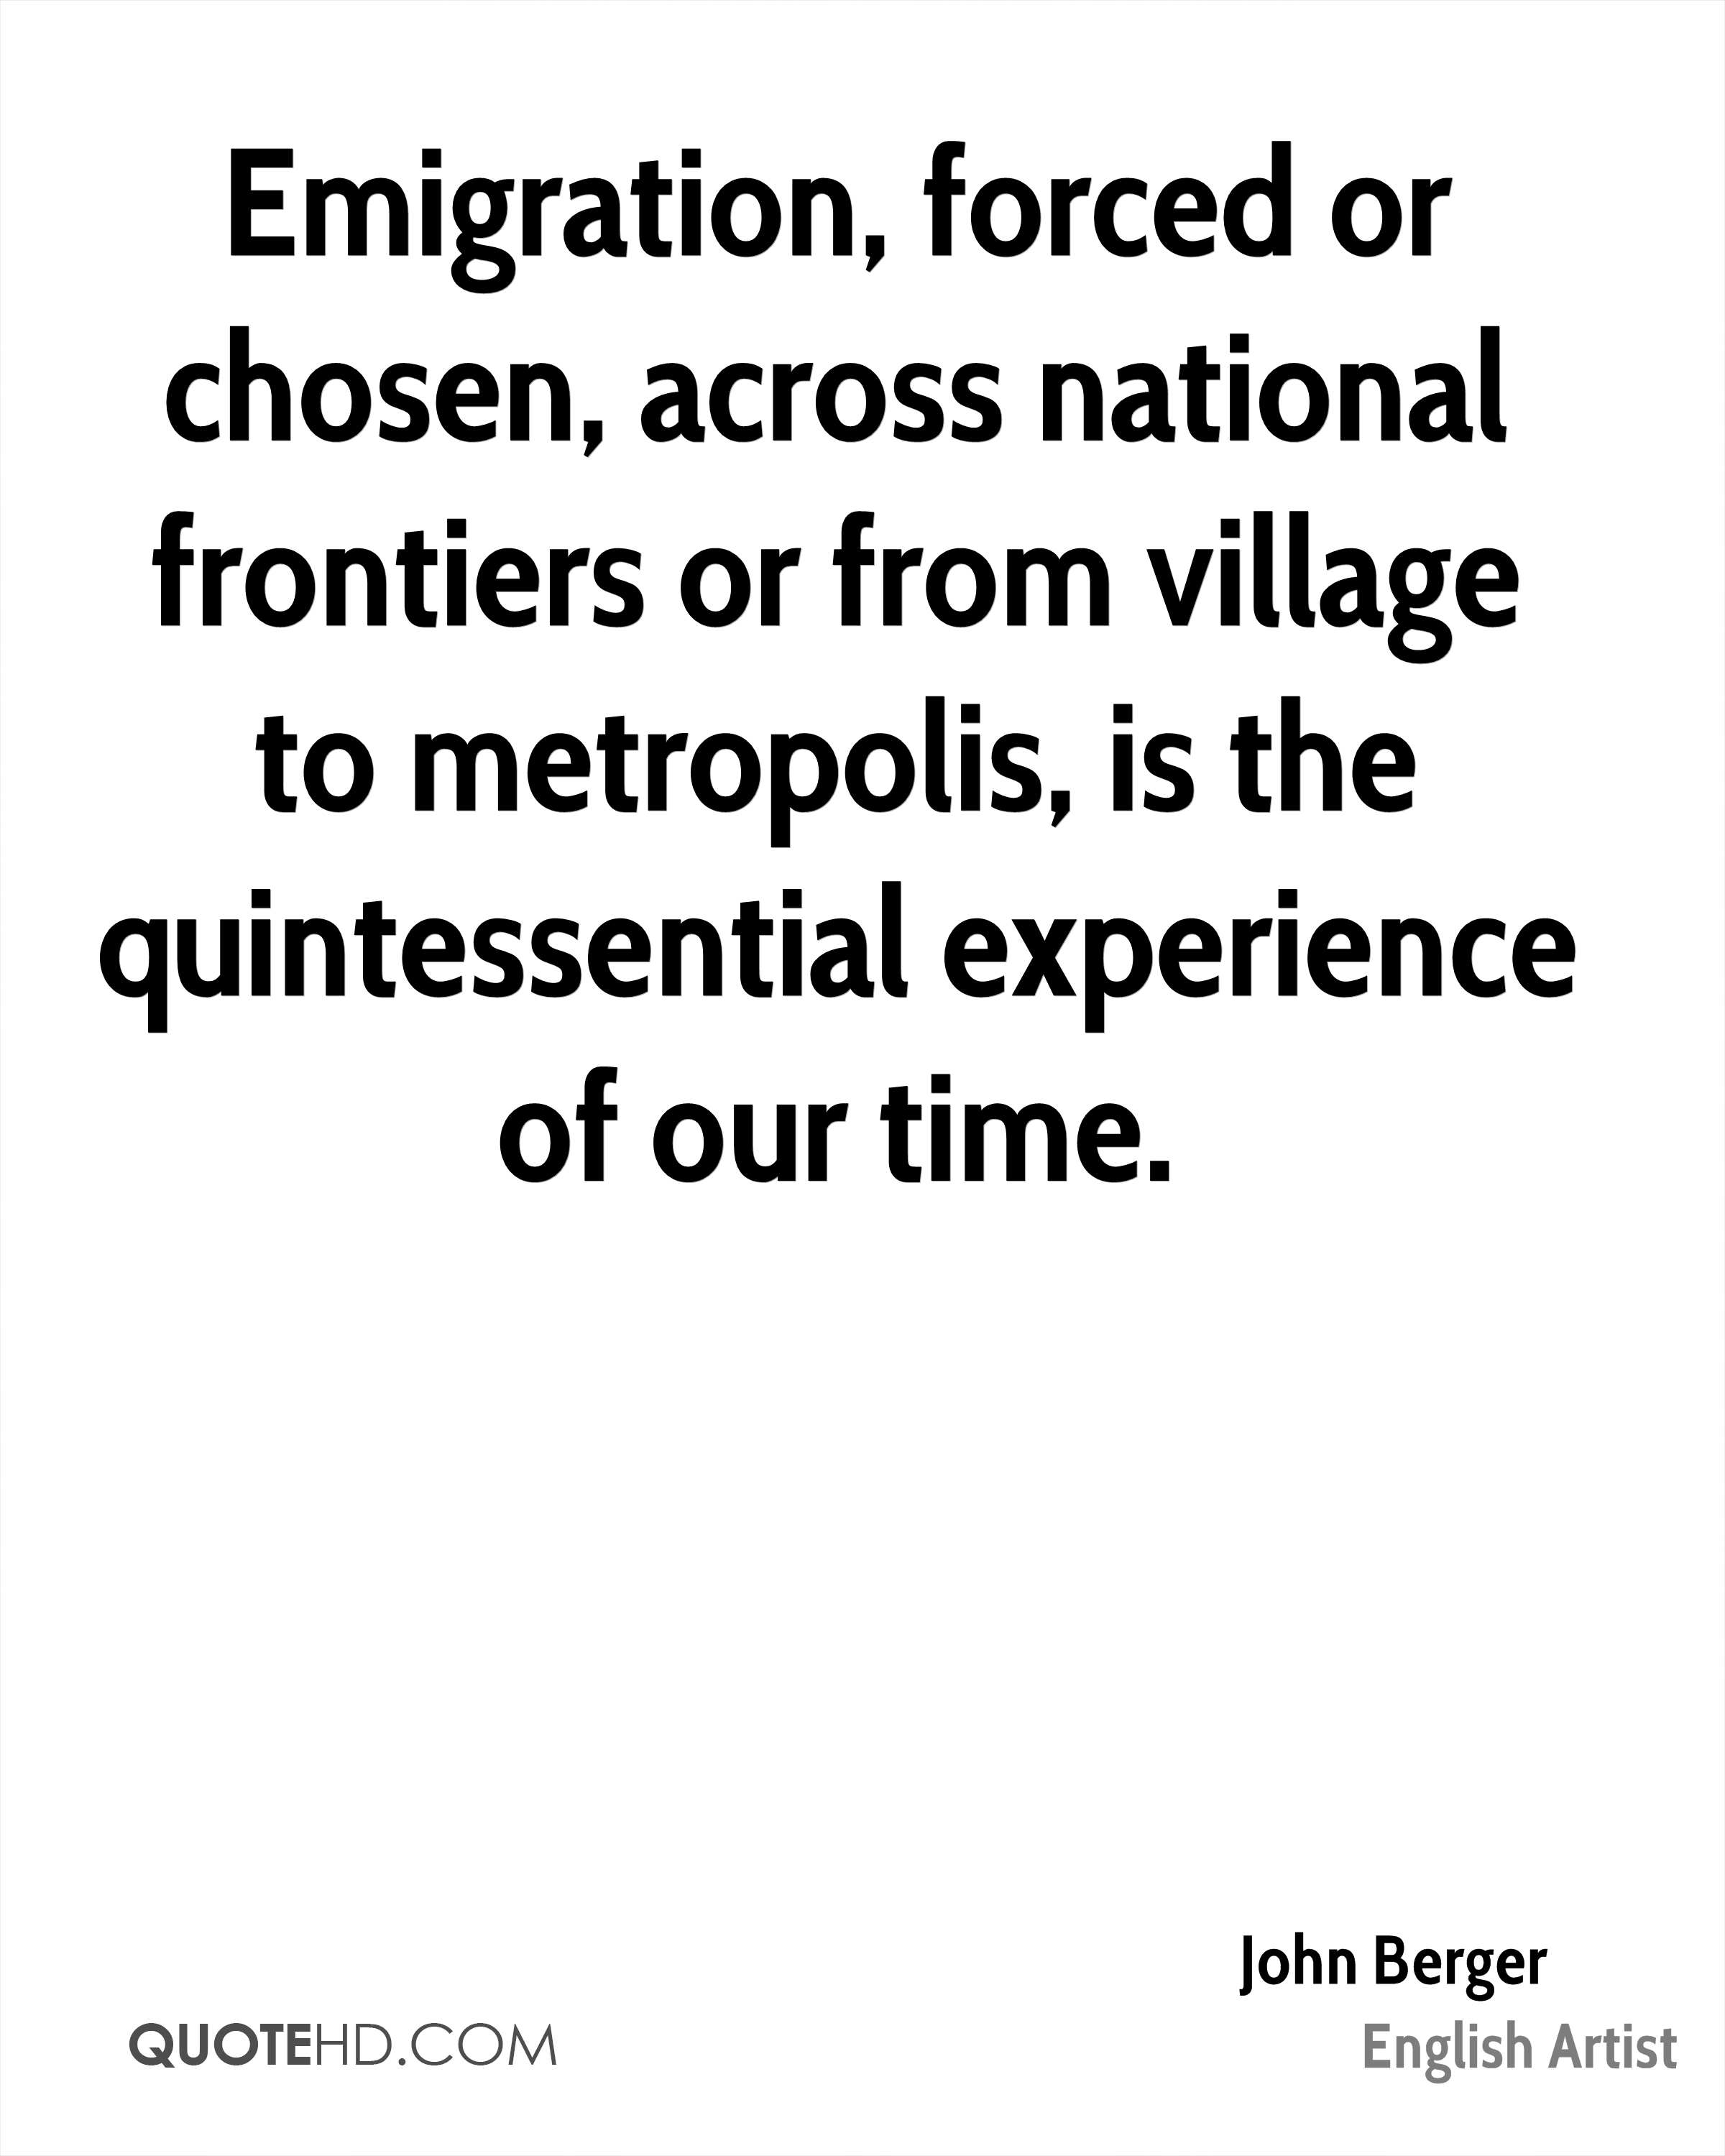 Emigration, forced or chosen, across national frontiers or from village to metropolis, is the quintessential experience of our time.